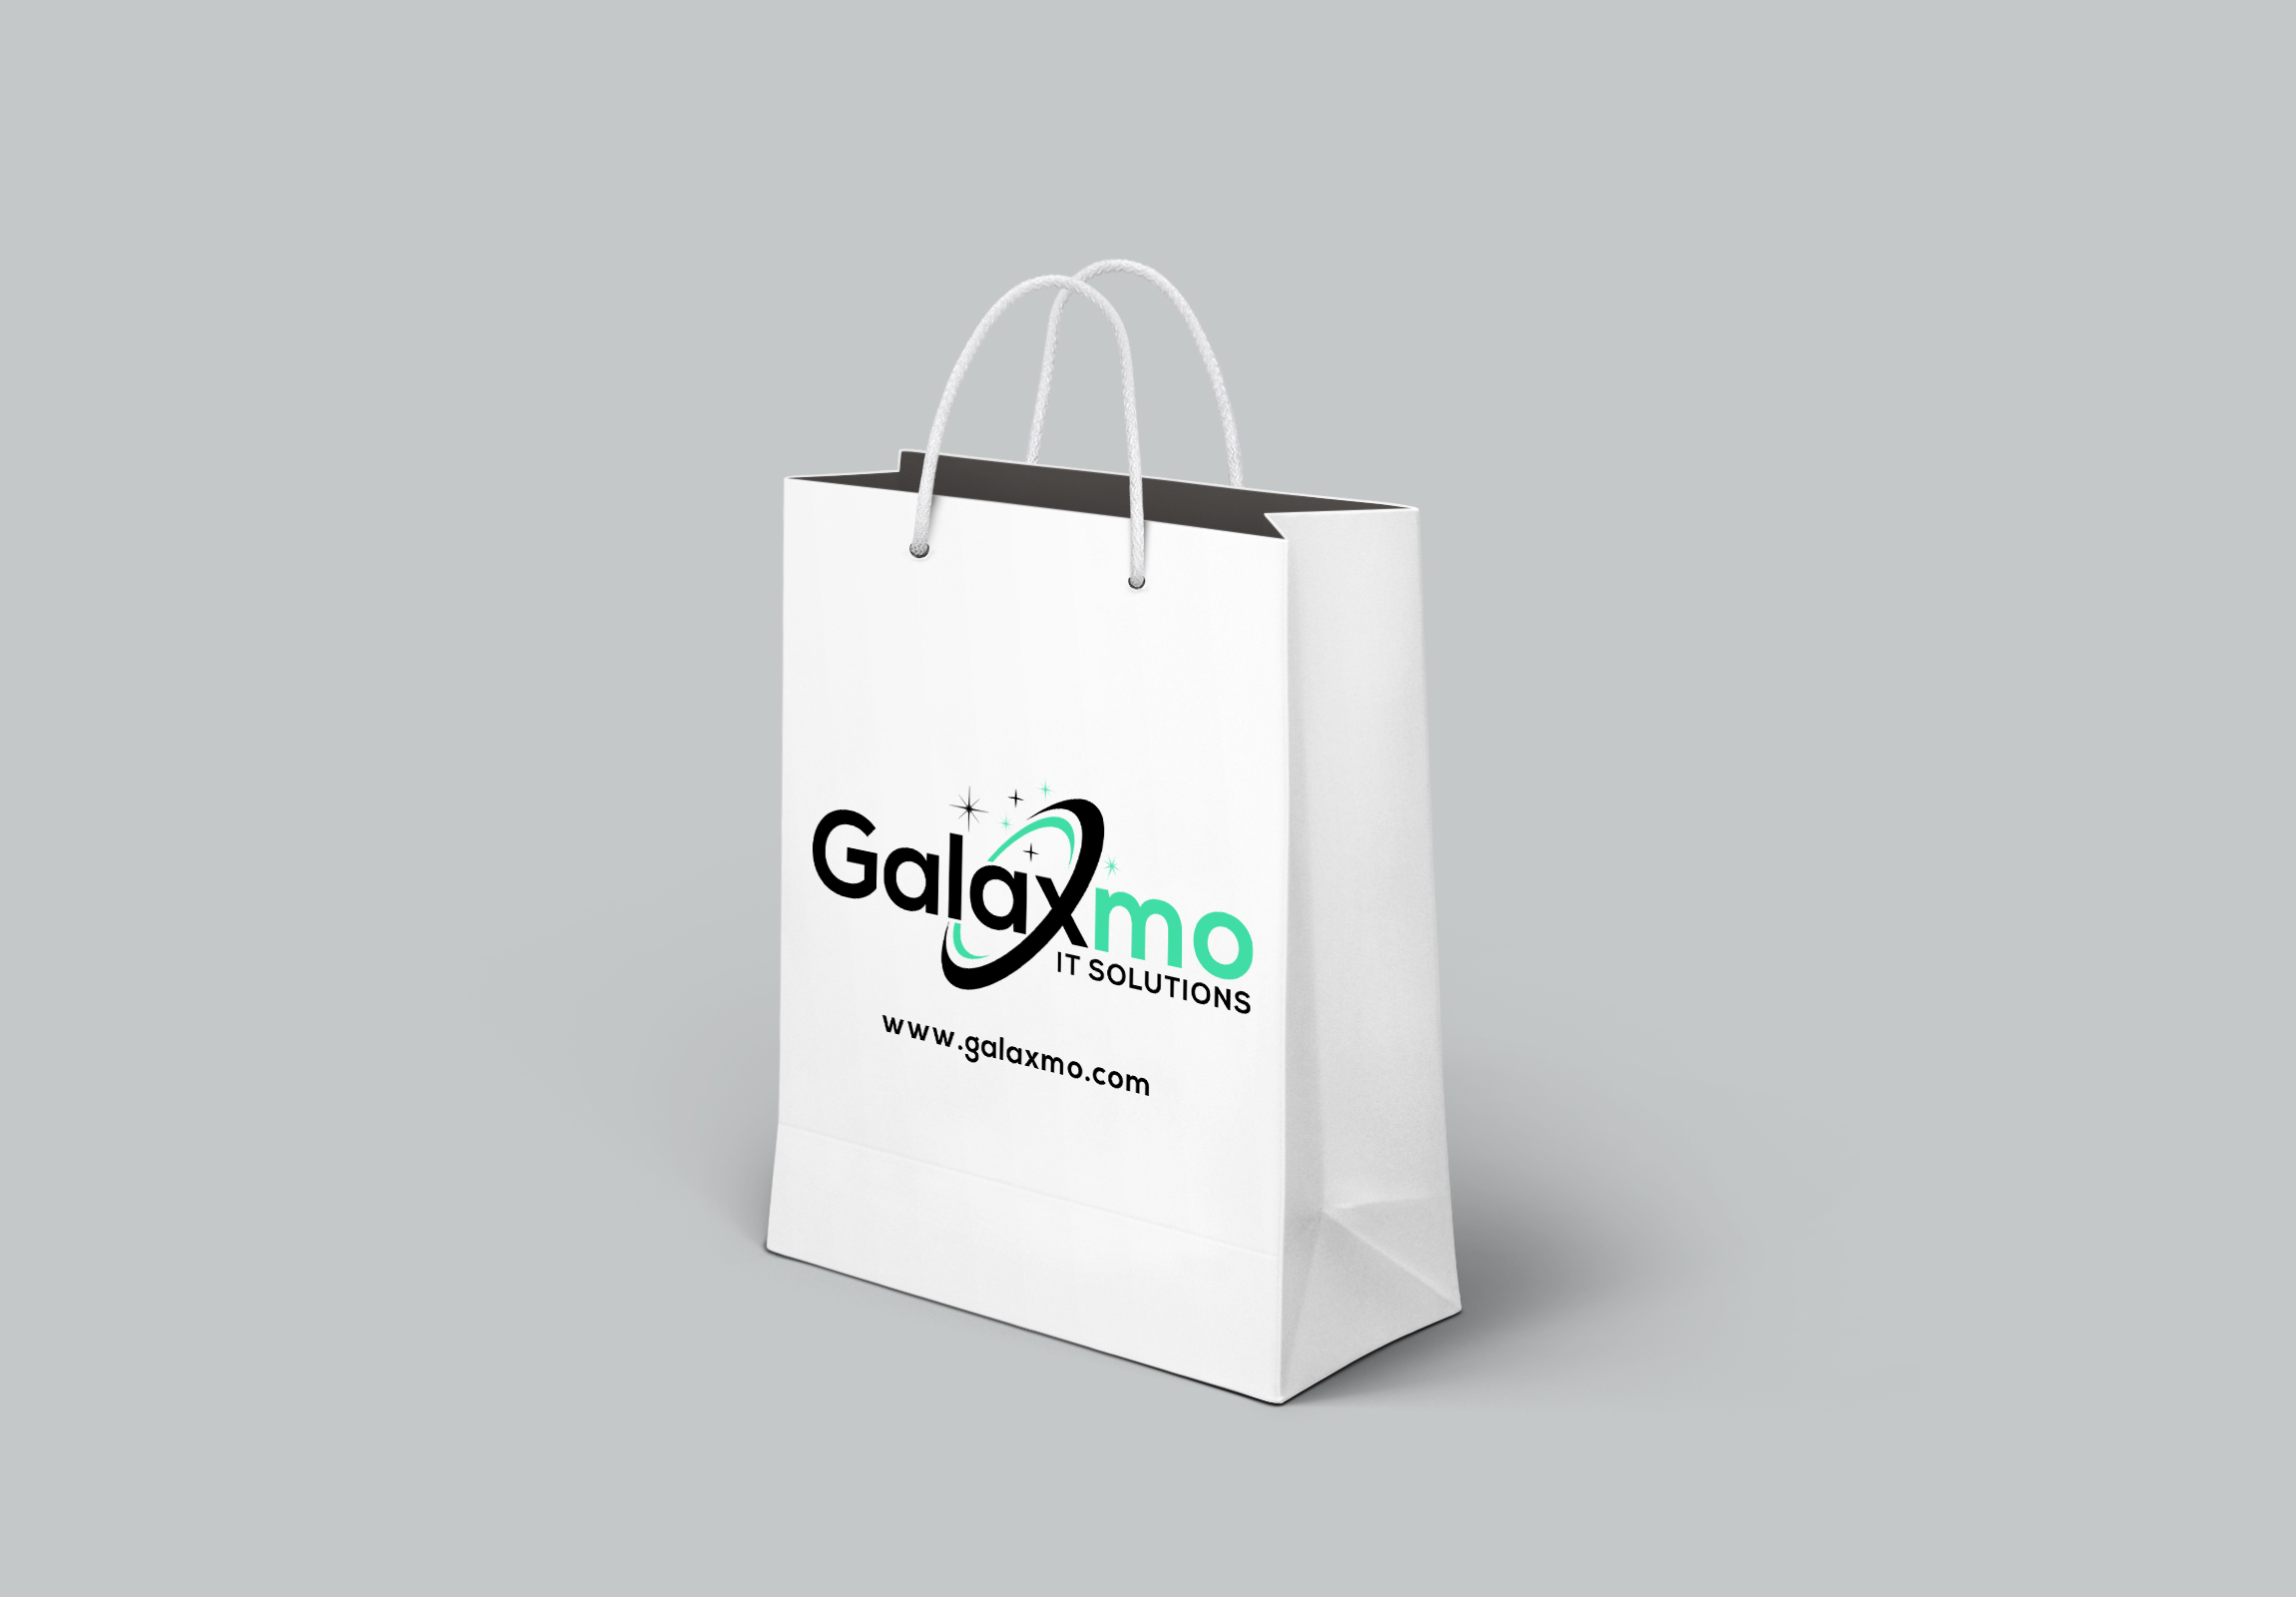 shopping bag mockup galaxmo it solutions